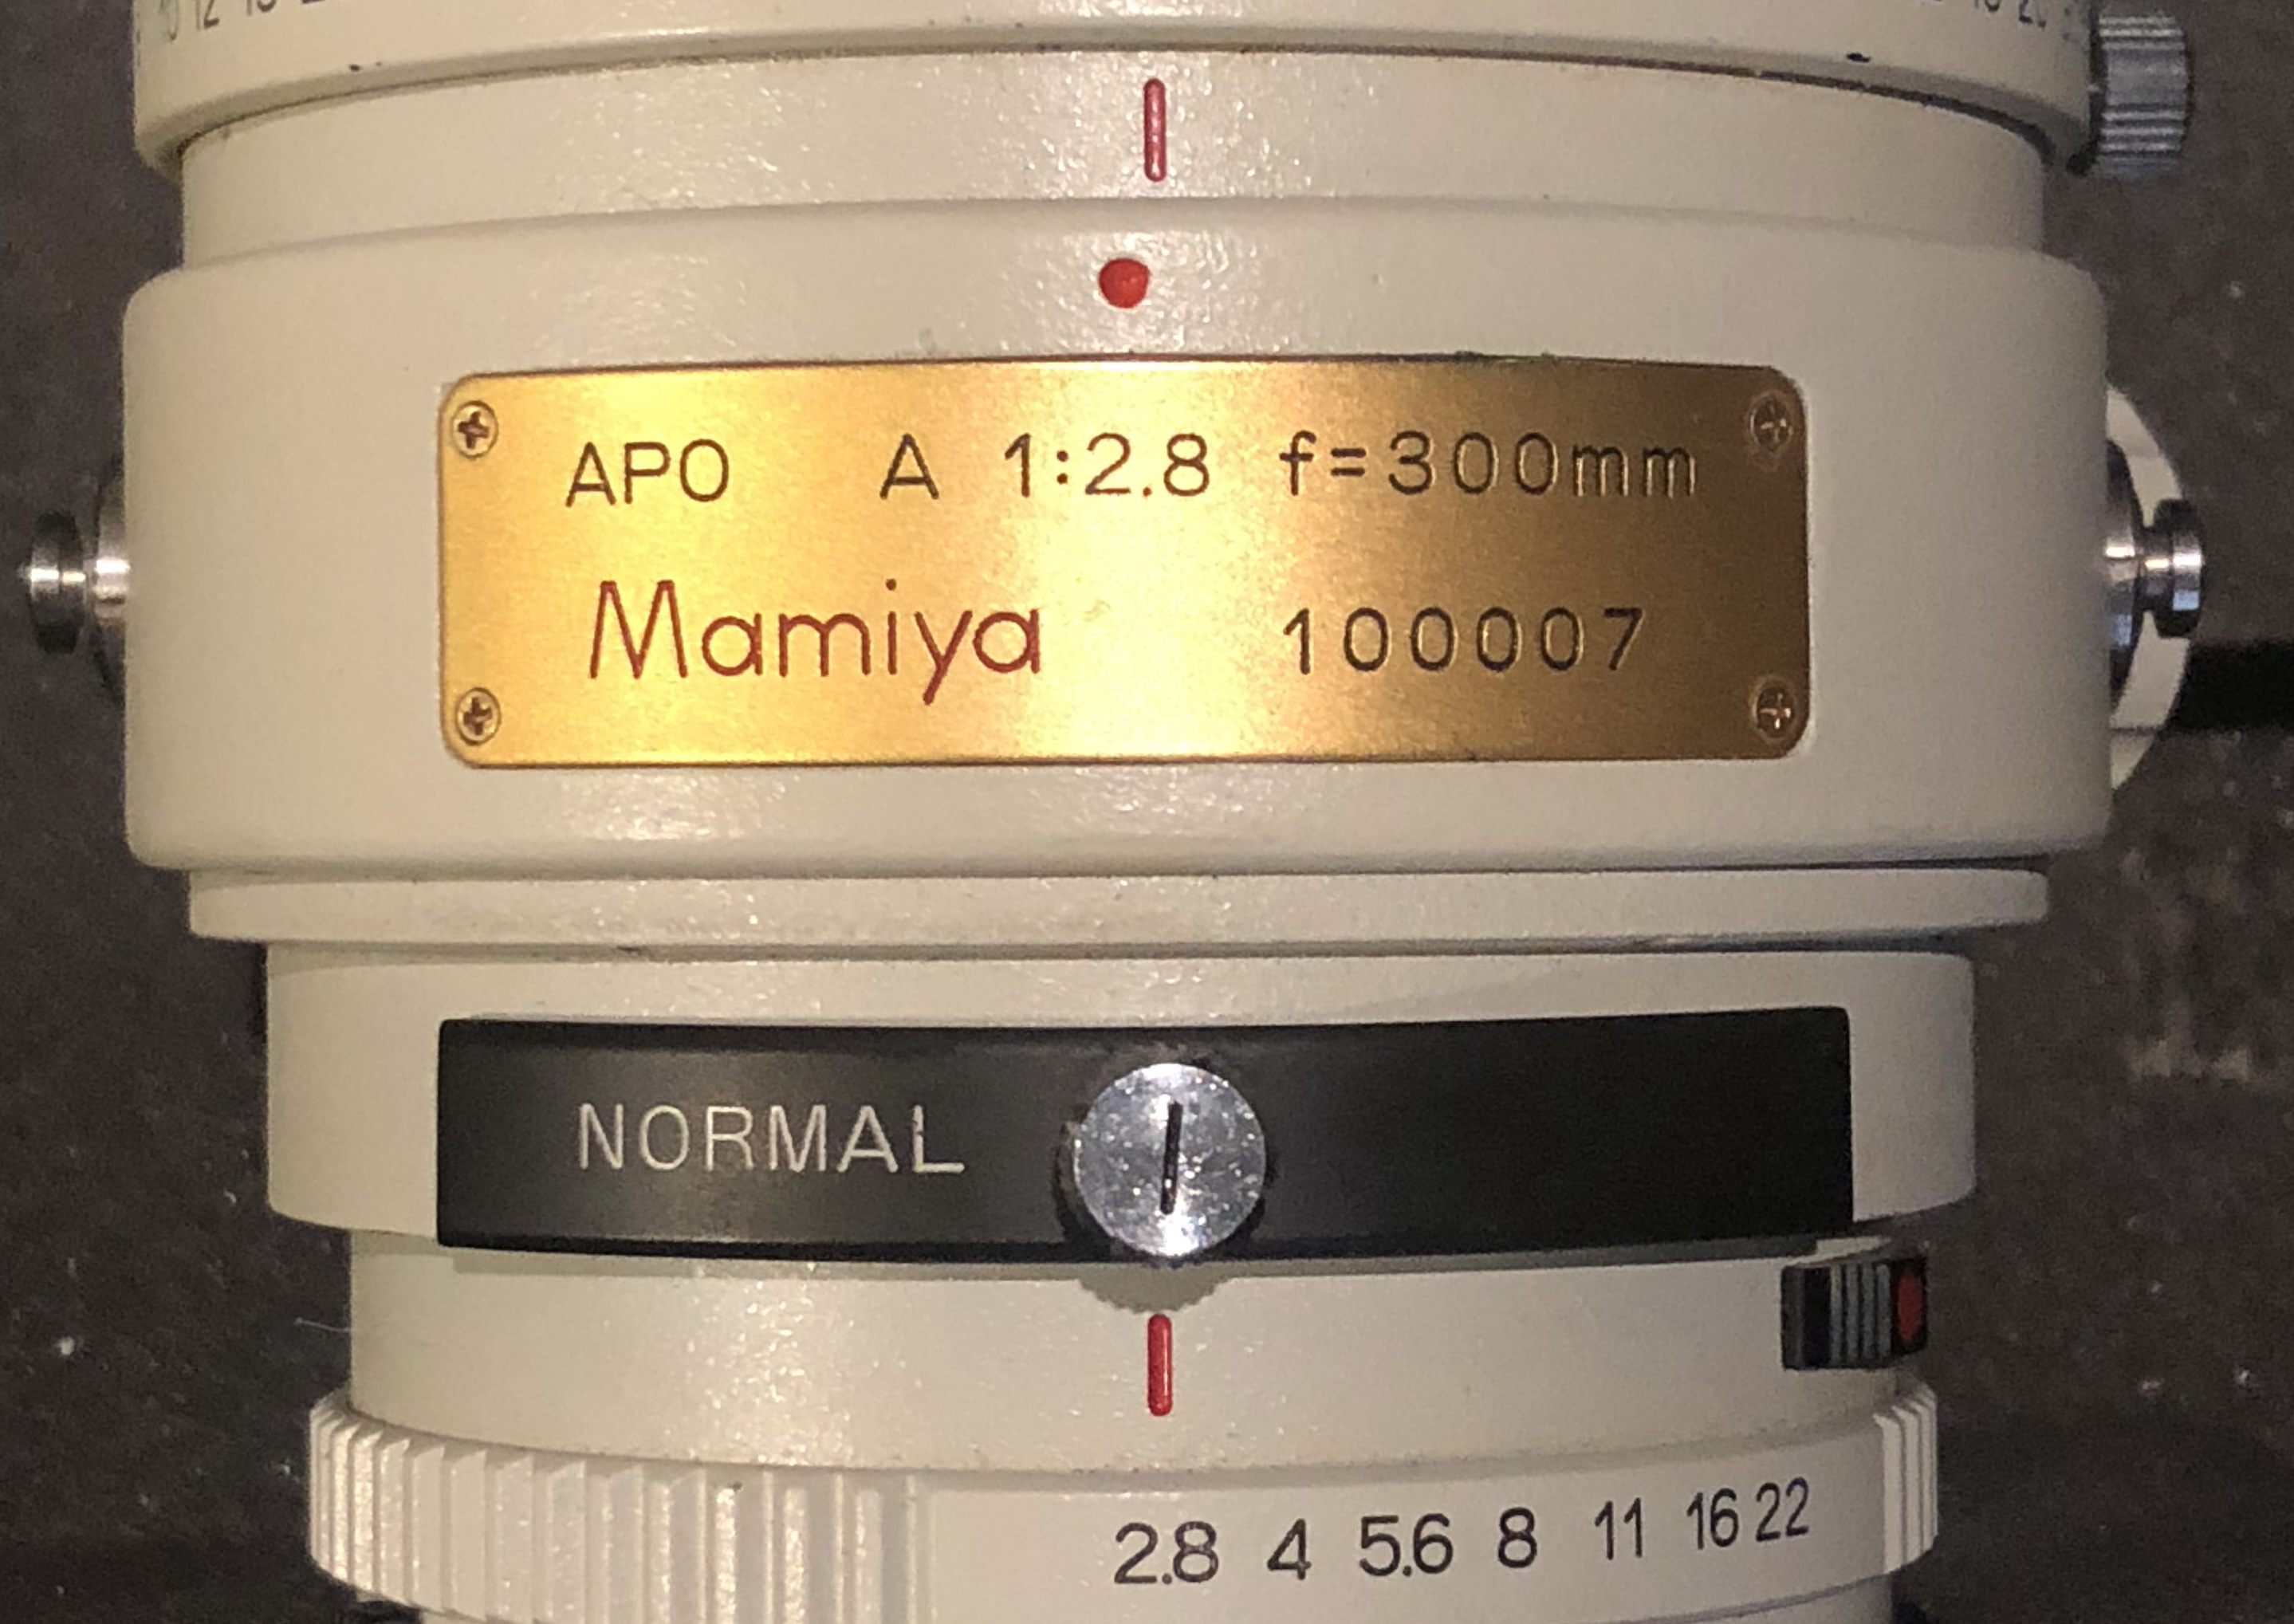 Mamiya 300mm f2.8 APO Low Serial Number Lens